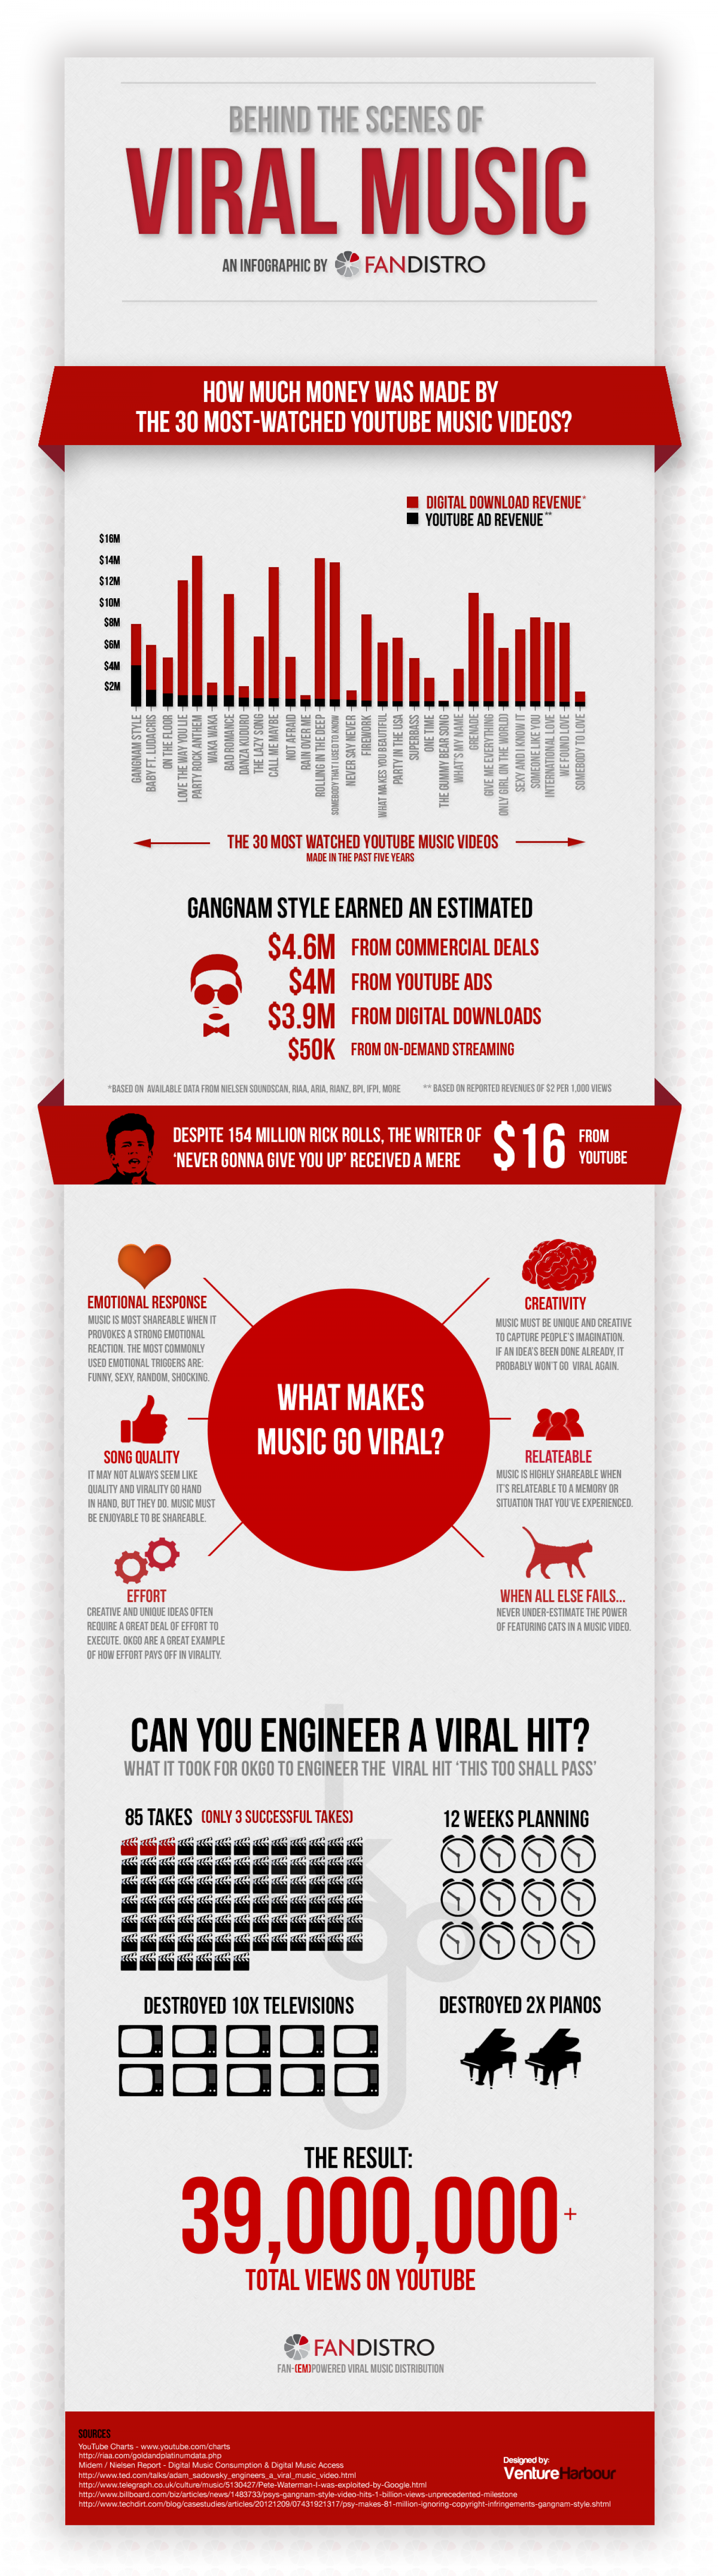 Behind The Scenes of Viral Music Infographic